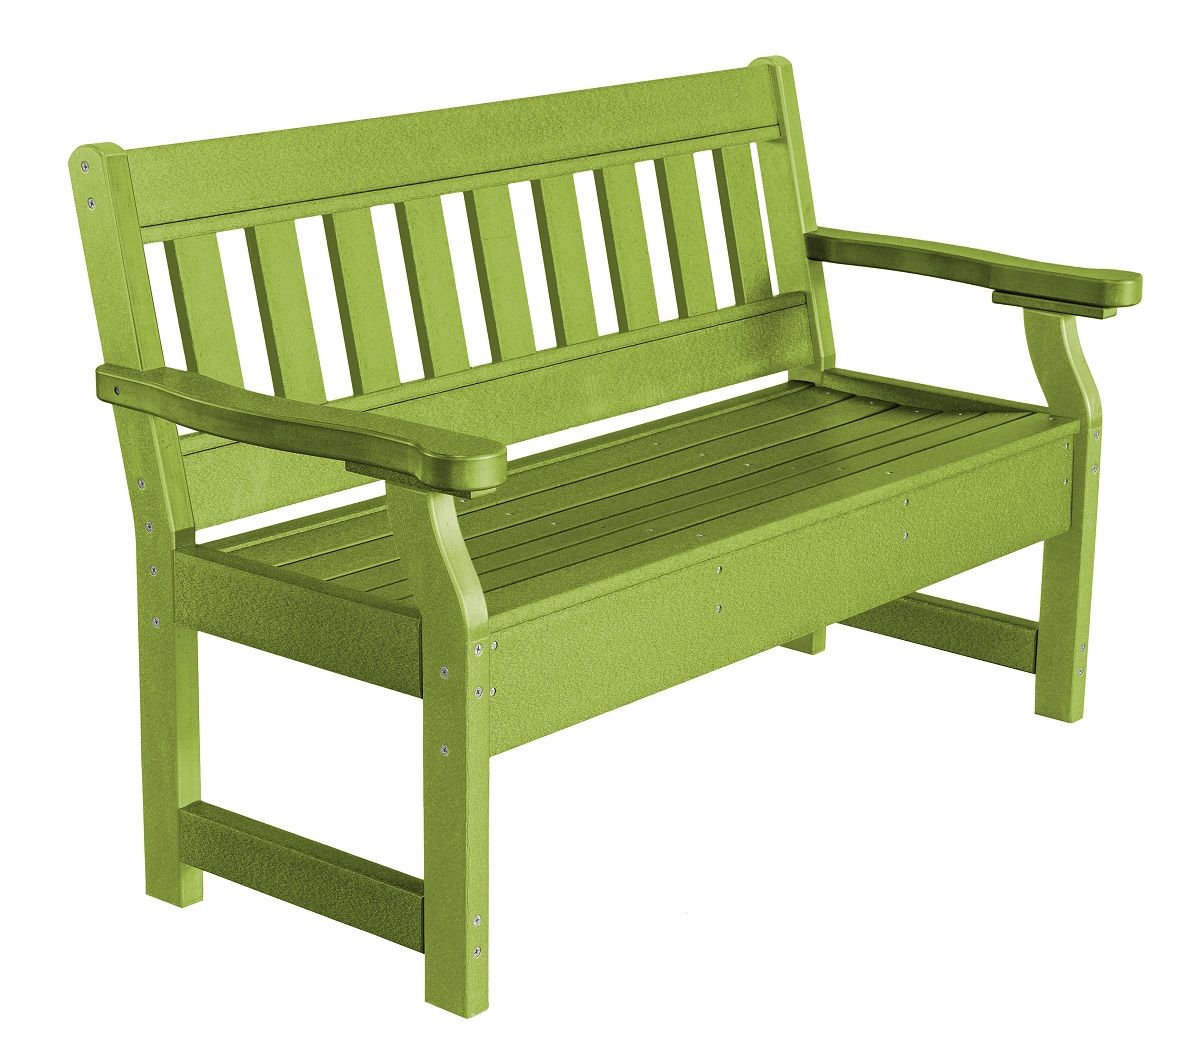 Lime Green Aden Garden Bench